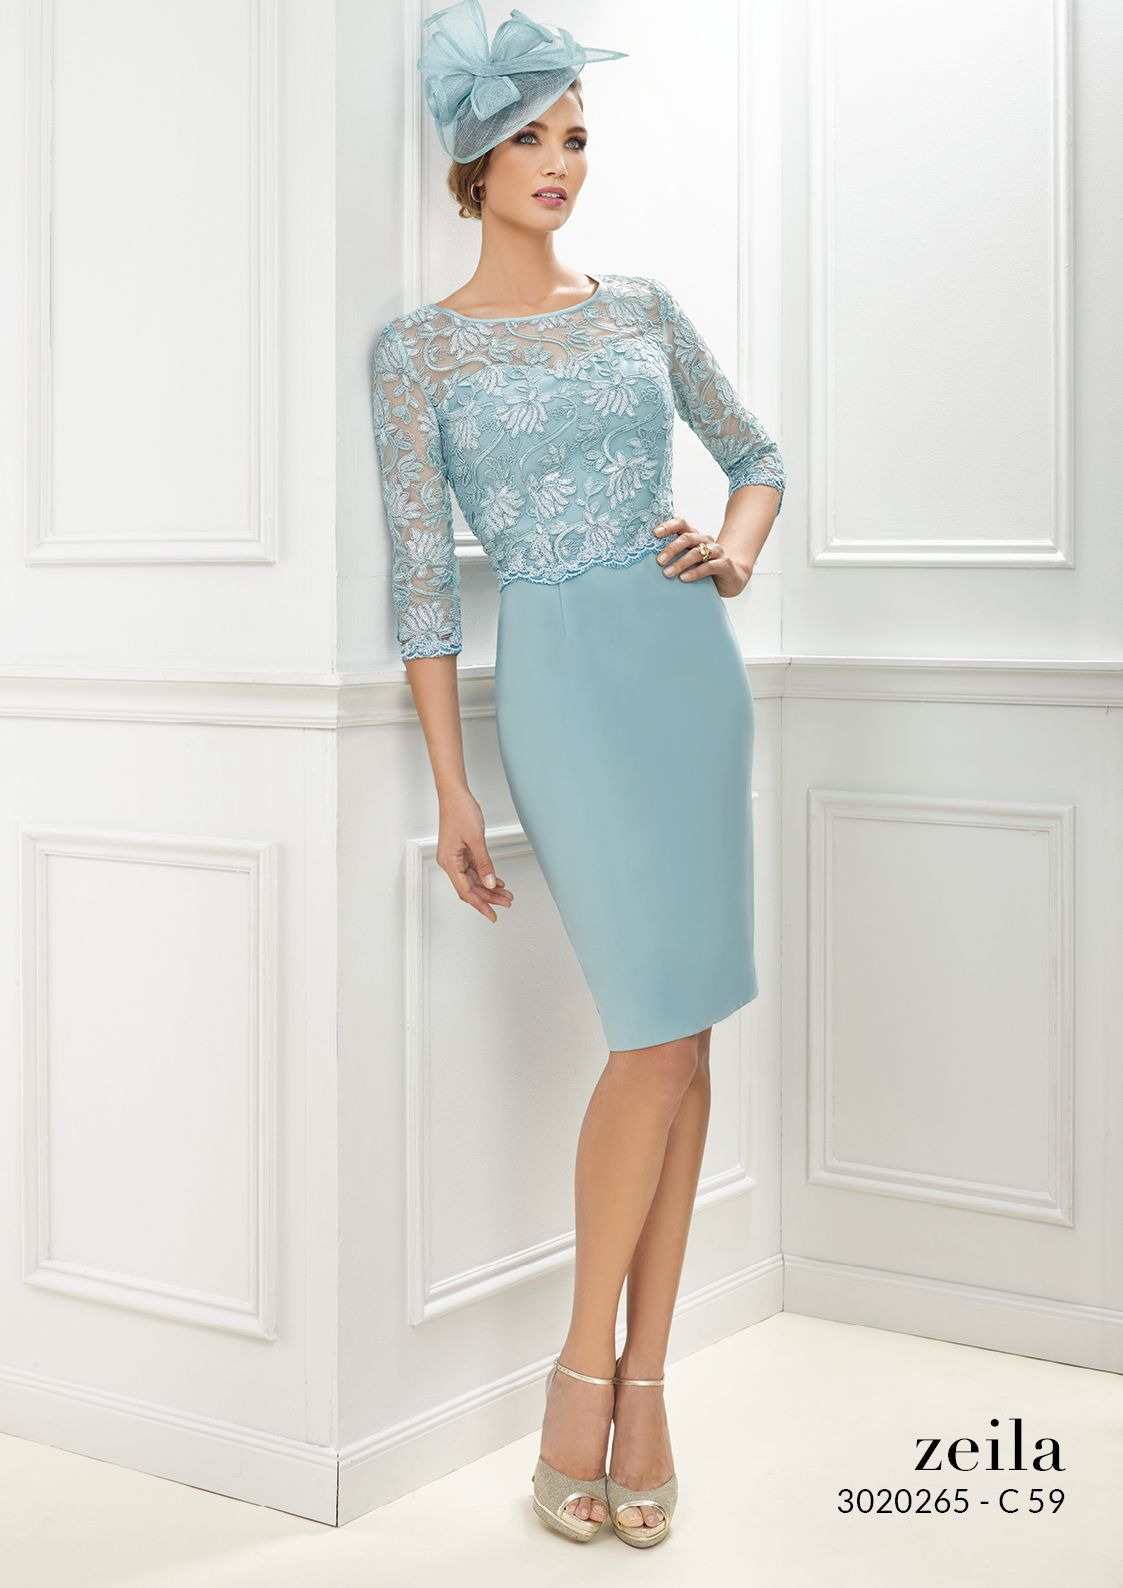 Special Occasion Wear Page 1 | Μαμά by Polykseni Meligdi | Pinterest ...